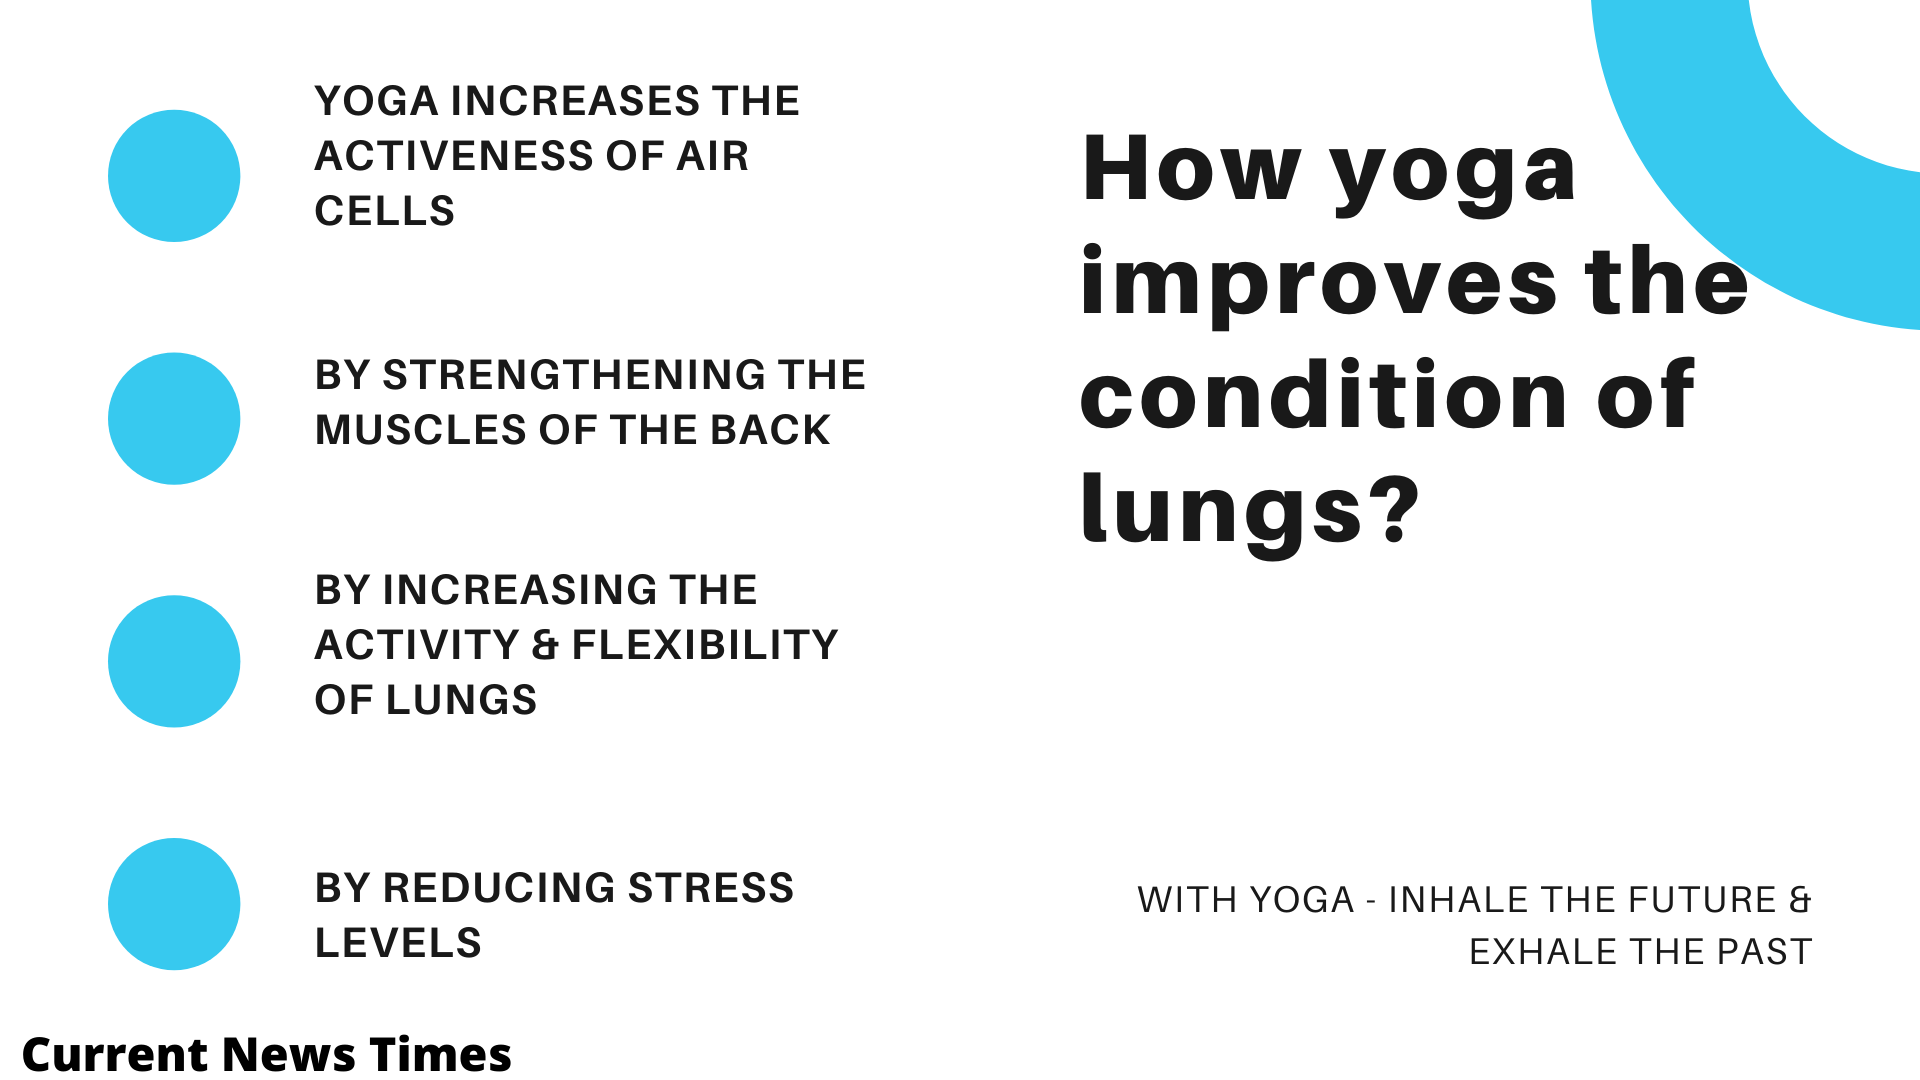 How-yoga-improves-lungs-conditions